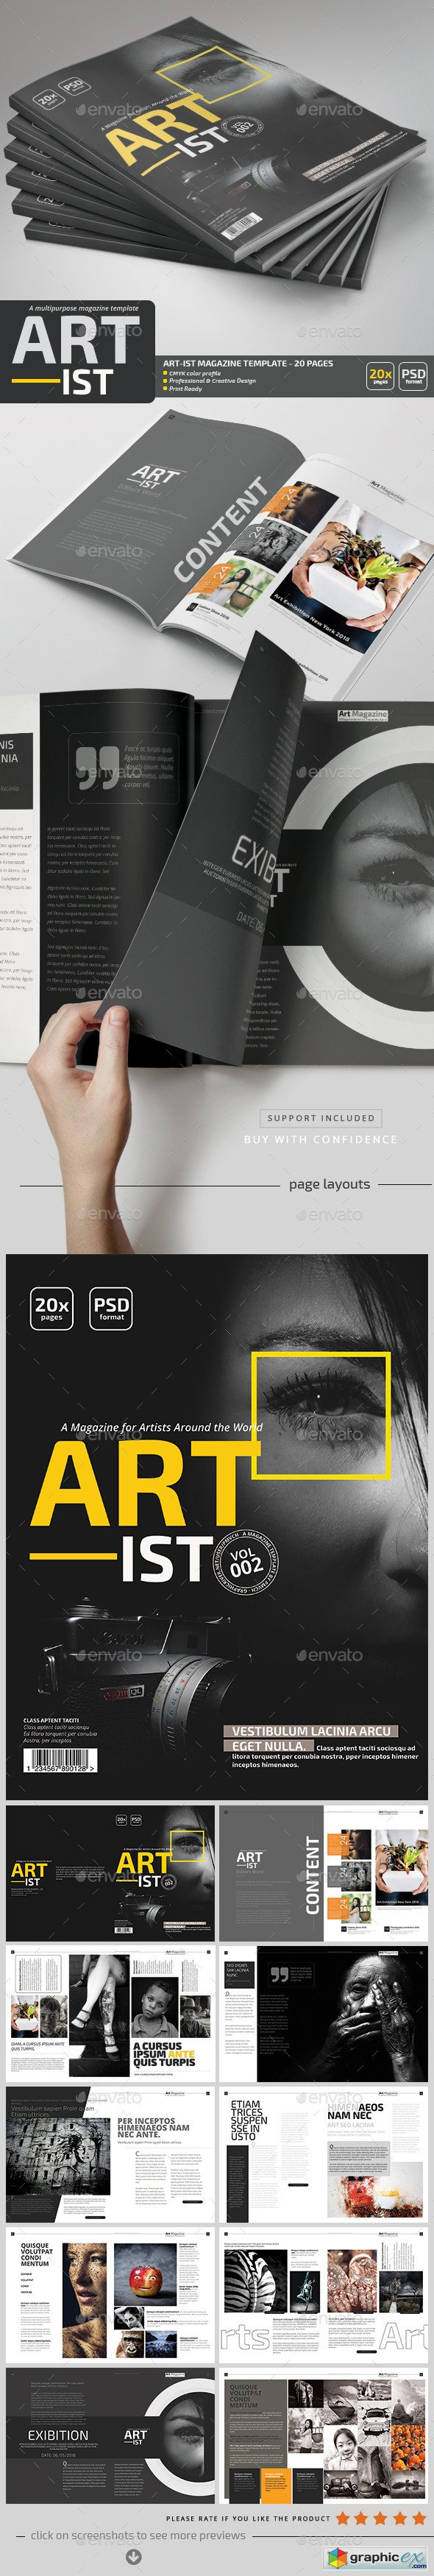 Art-ist Magazine Template V.2